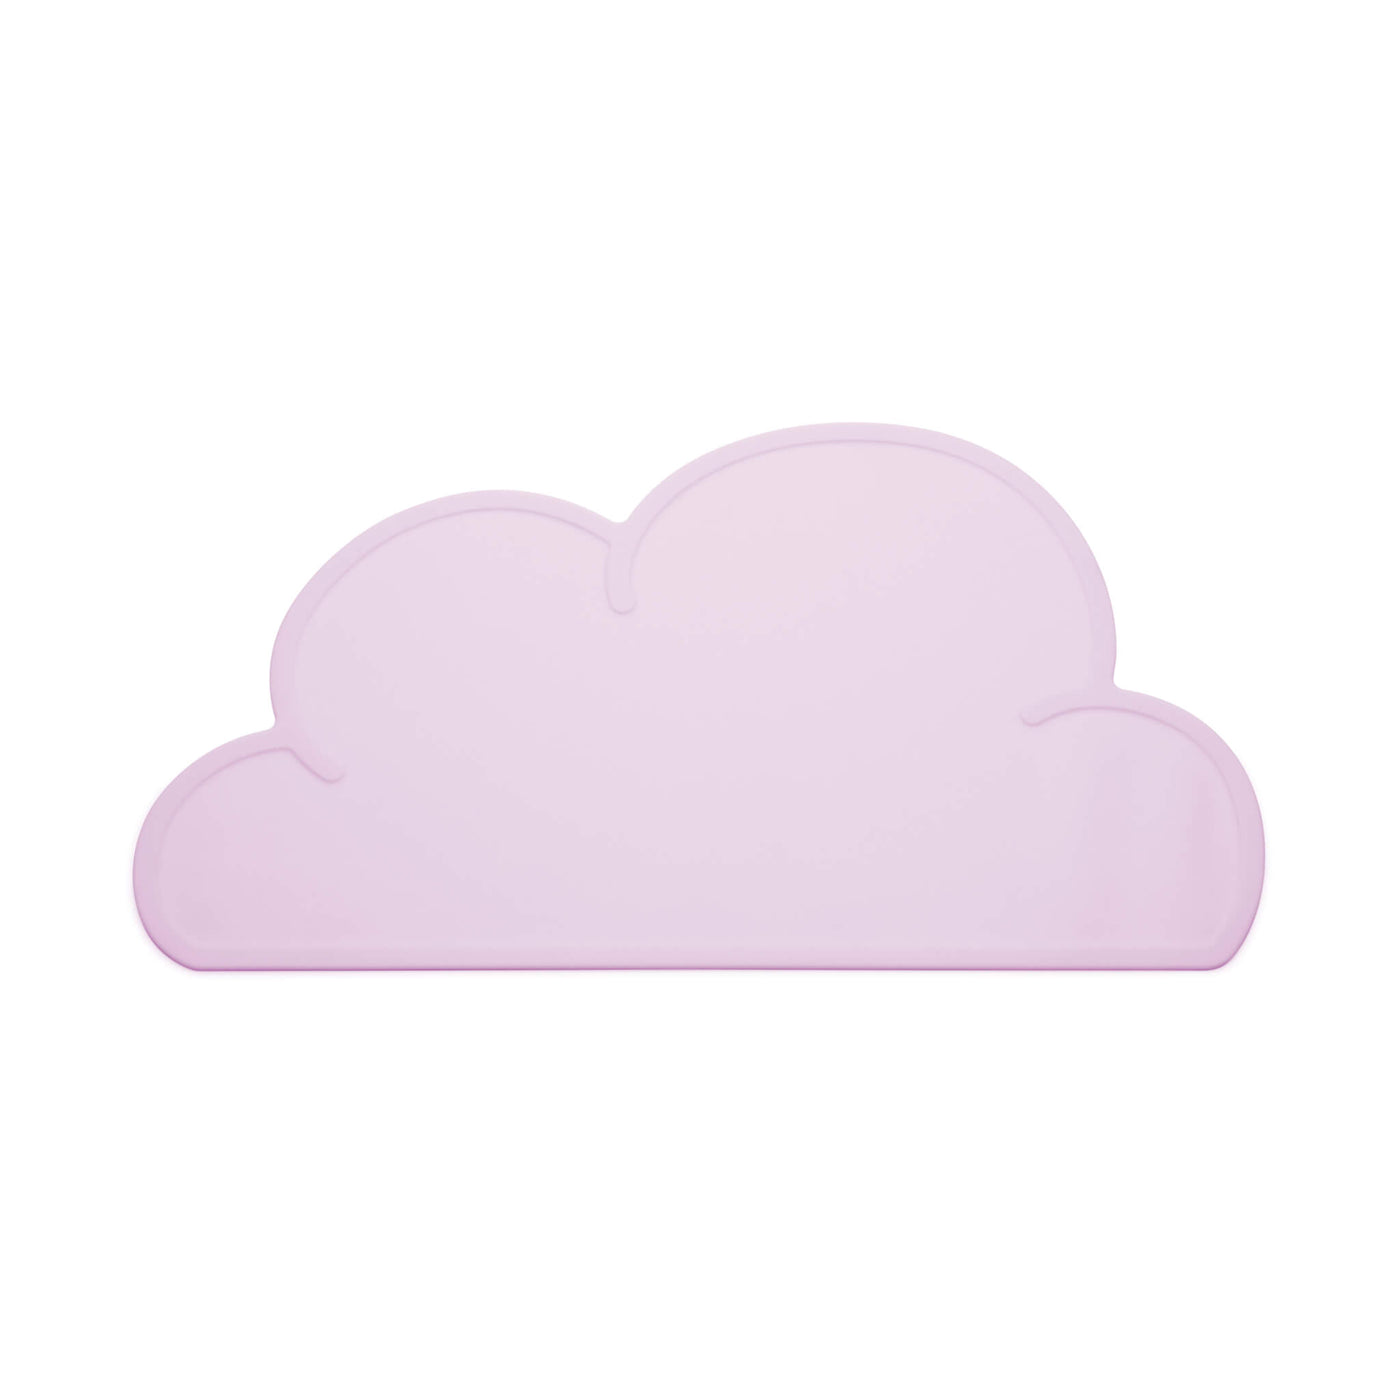 Cloud Placemat - Light Pink